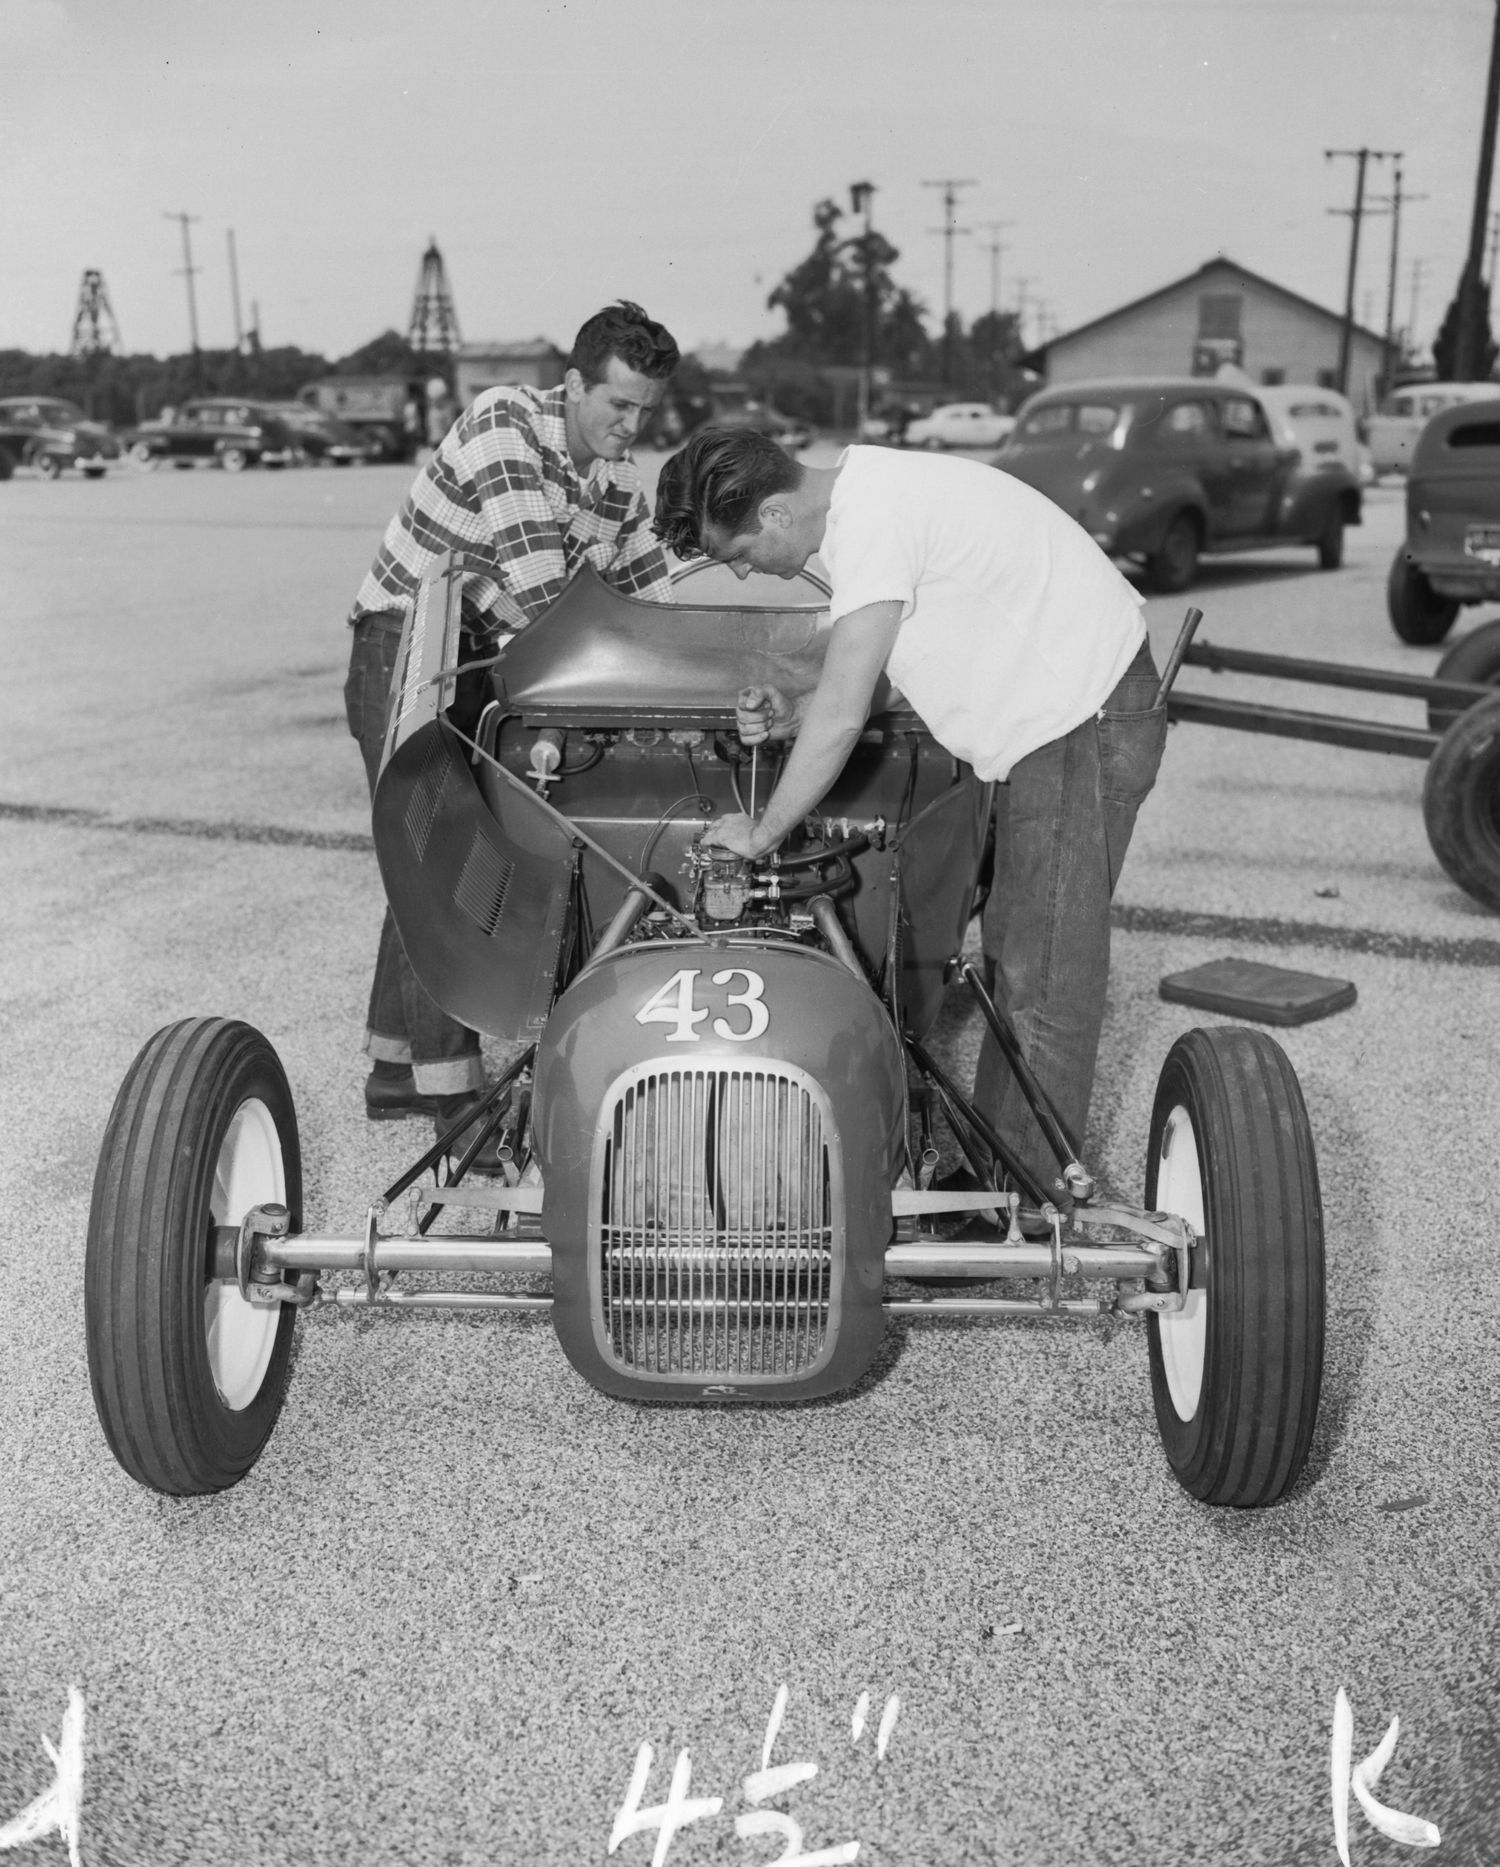 A Day At The Drags, Pomona, 1952